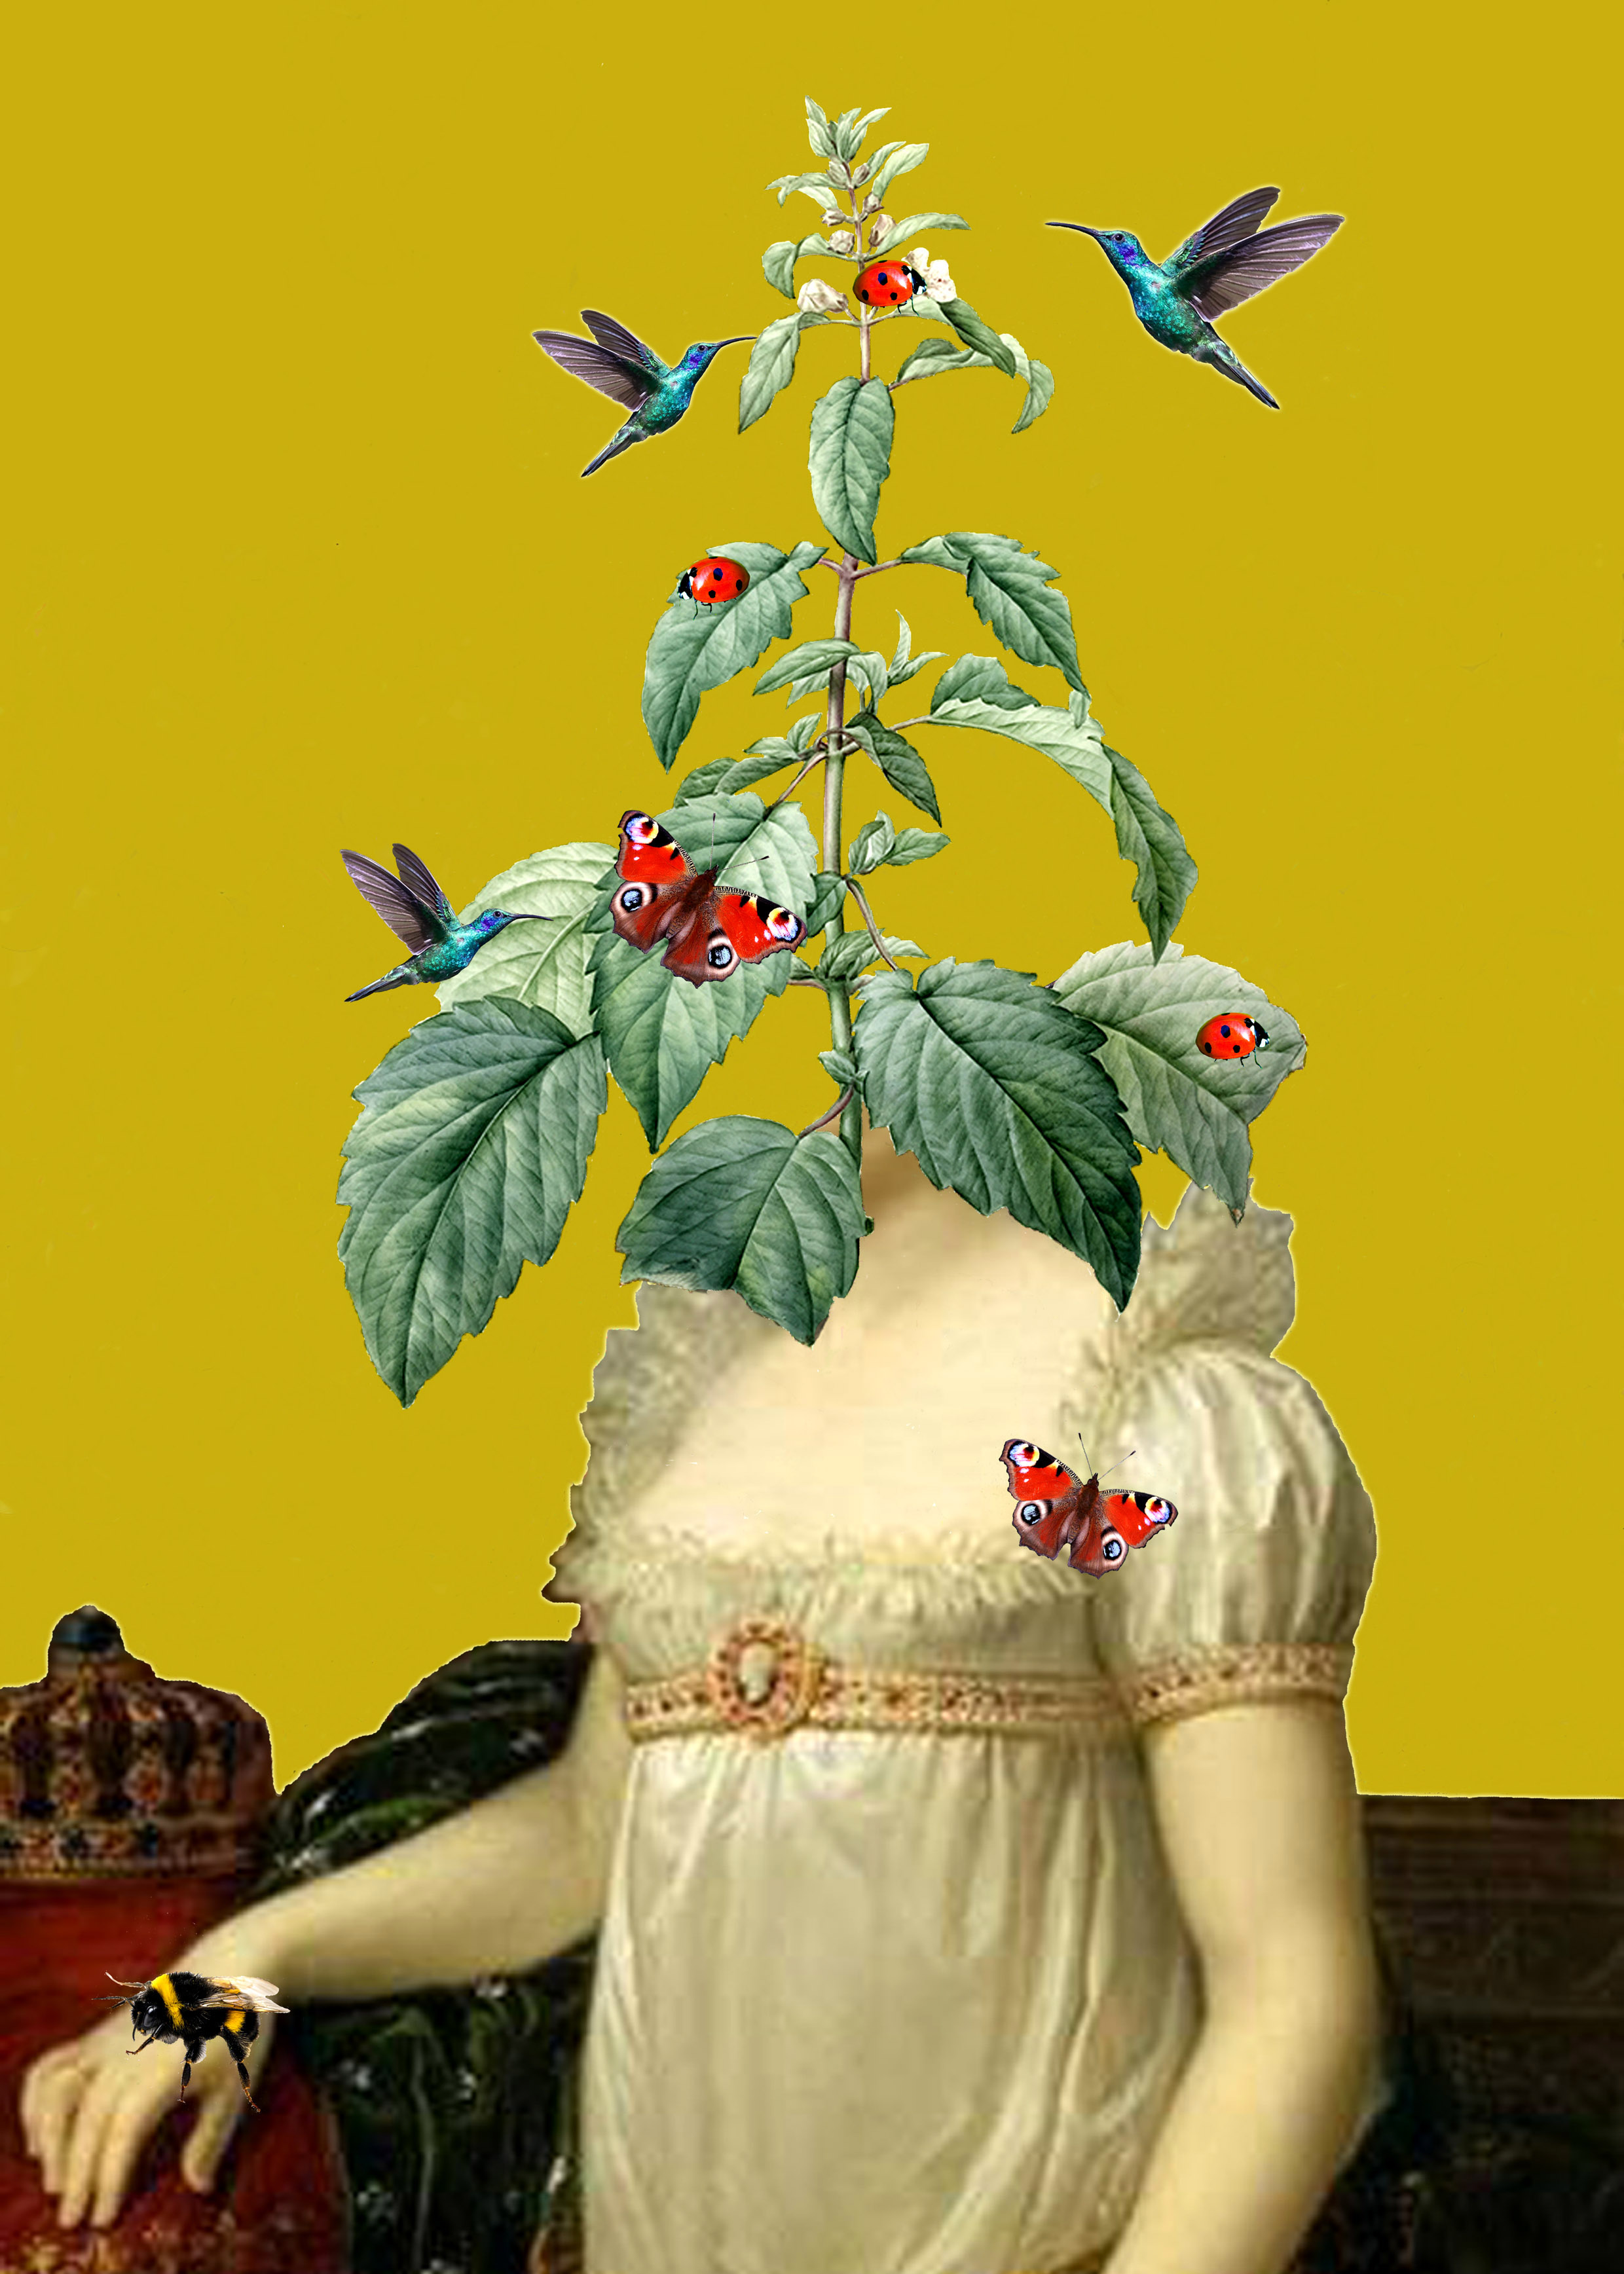 This collage shows the arms and torso of the Empress Josephine spliced together with the josephine imperatricis plant, positione where her head would be. Hummingbirds, ladybirds and butterflies flutter around the plant. Josephine faces the sitter, with her right arm slightly raised in front of a golden crown. Her white silk dress has a high empire-line waist and ruffles around the square neckline. The plant has a pyramidal shape with large, serrated leaves from a central stem, and is topped with a bloom of small white flowers.